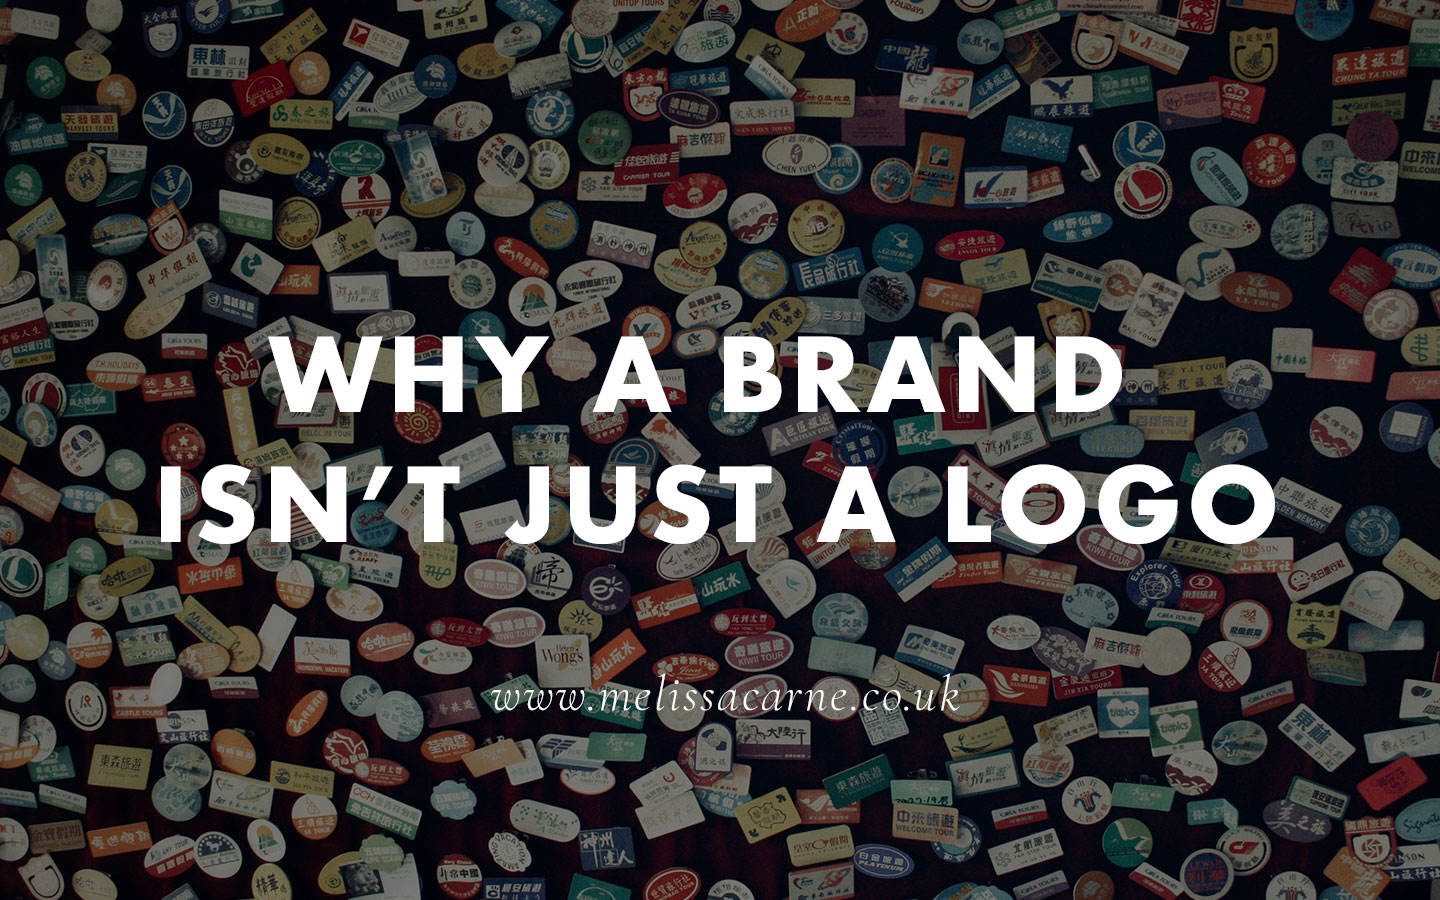 why-a-brand-isn't-just-a-logo